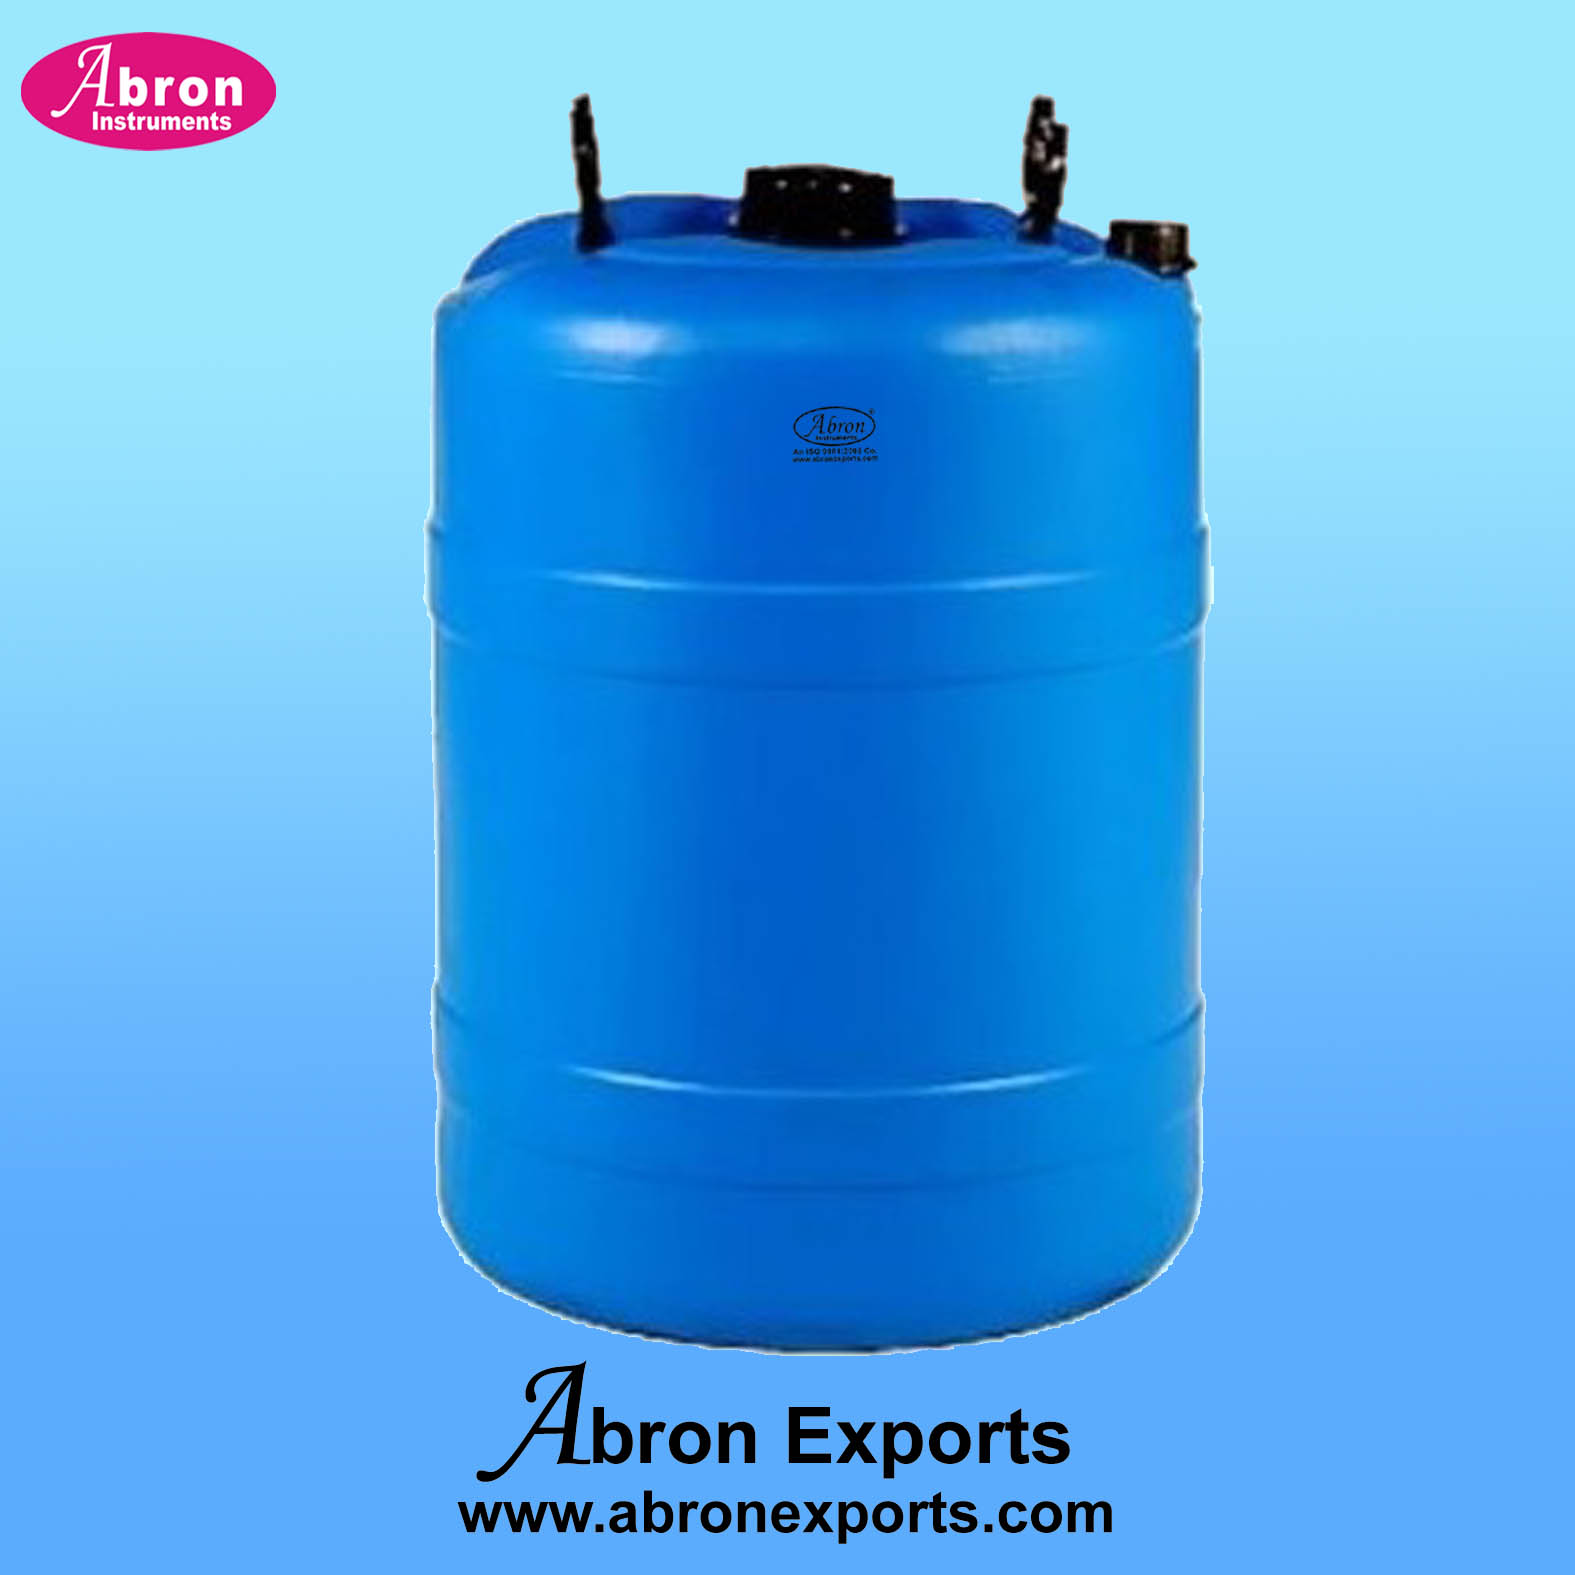 Containers Plastic 100 Liters Narrow Mouth Screw Cap Blue Heavy Abron AT-9515-100W